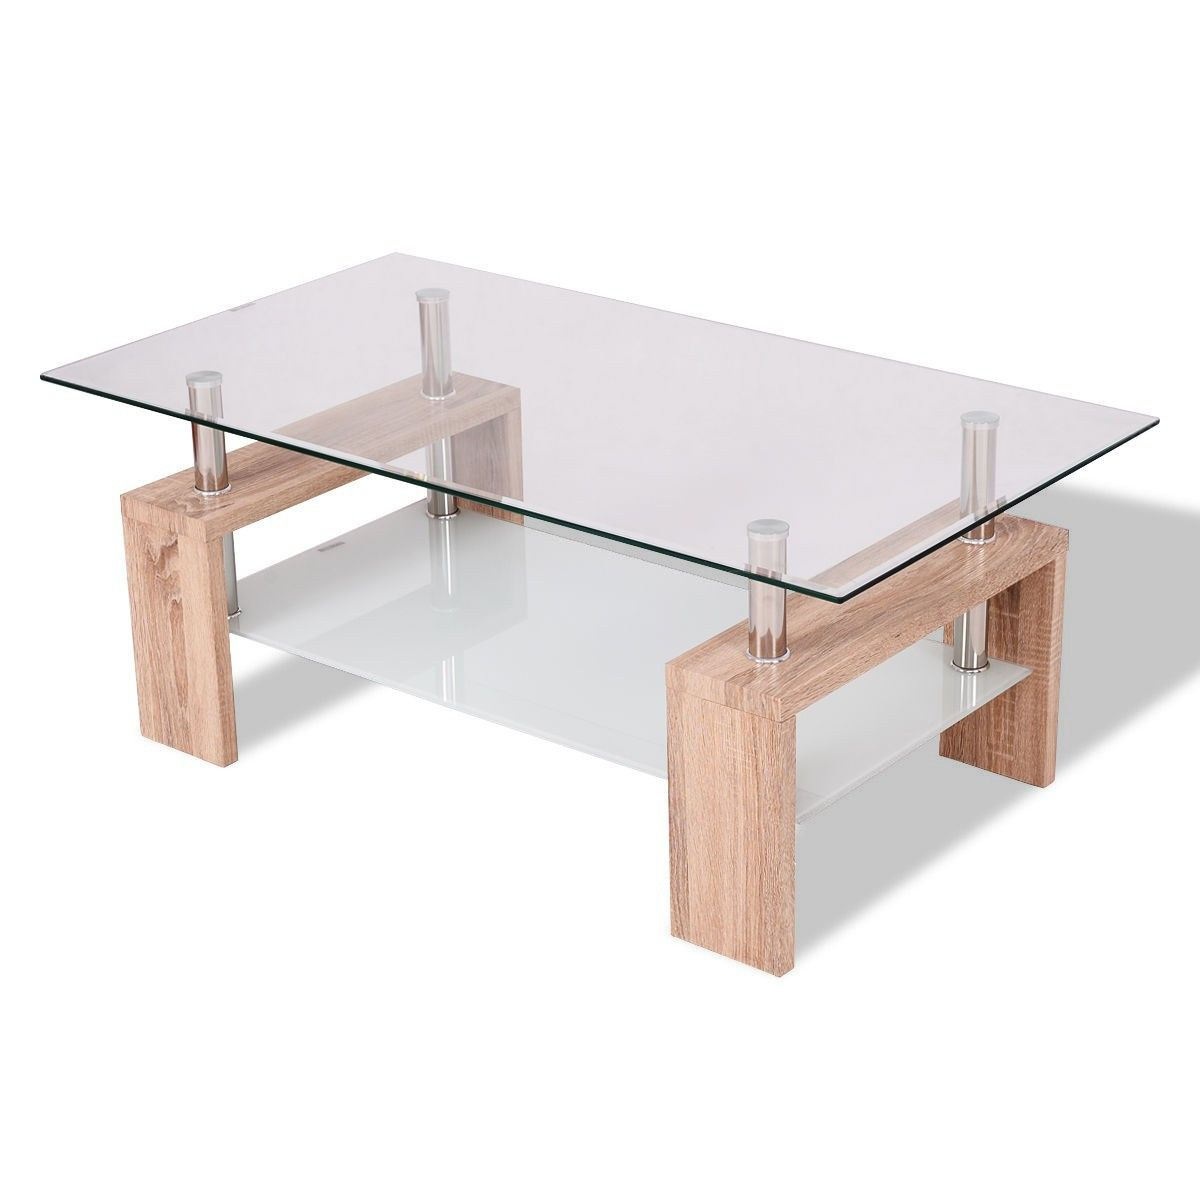 Charming 20 Coffee Table Tempered Glass   Luxury Home Office Furniture Check More At  Http:/